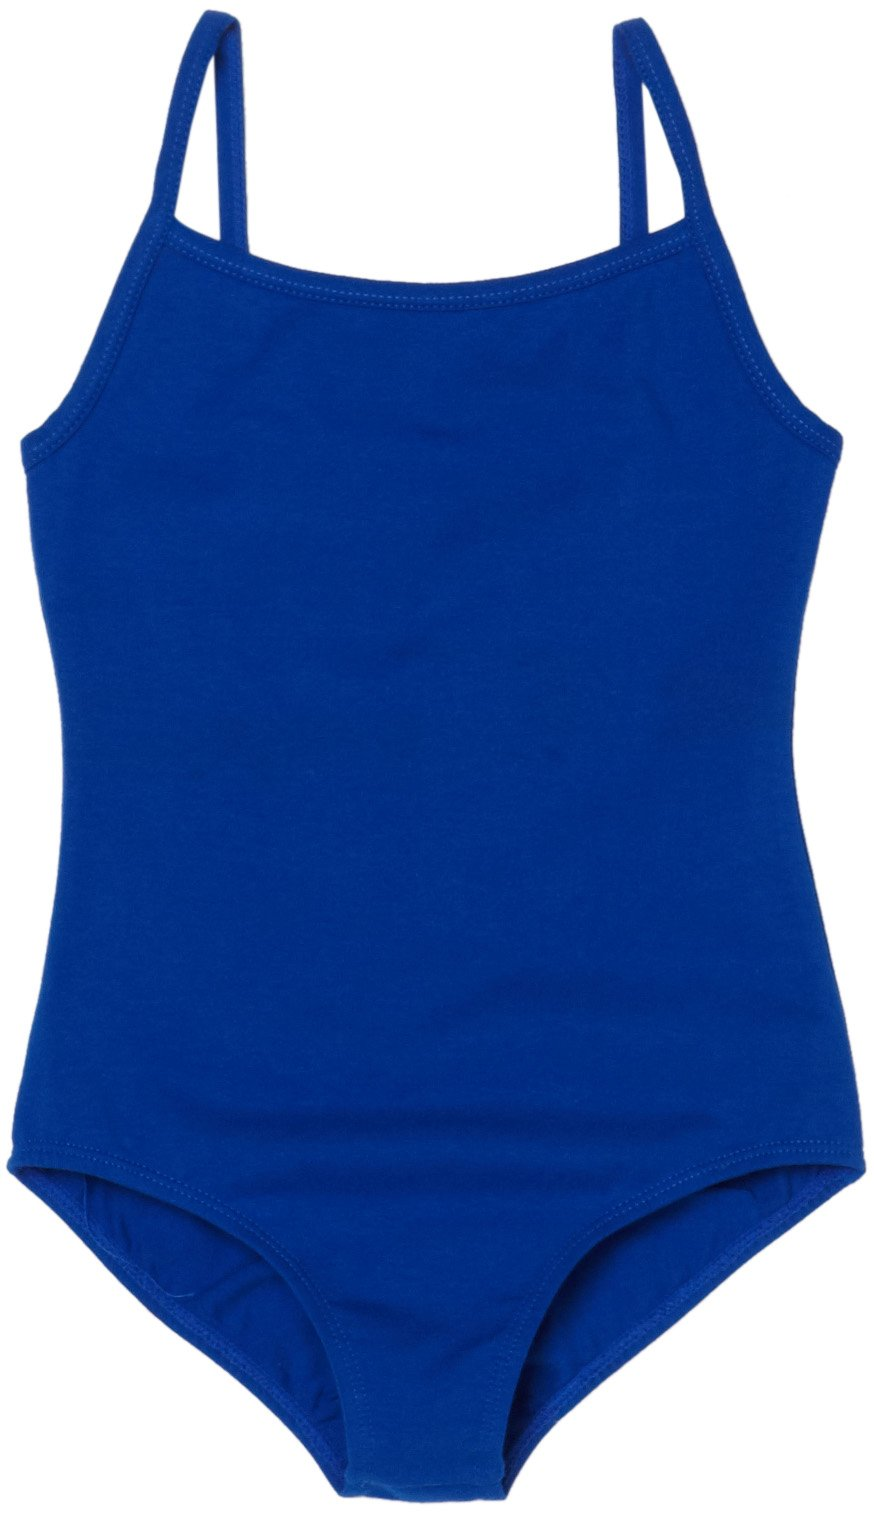 Sansha Little Girls' Stacie Camisole Leotard, Royal, Toddler 2-4